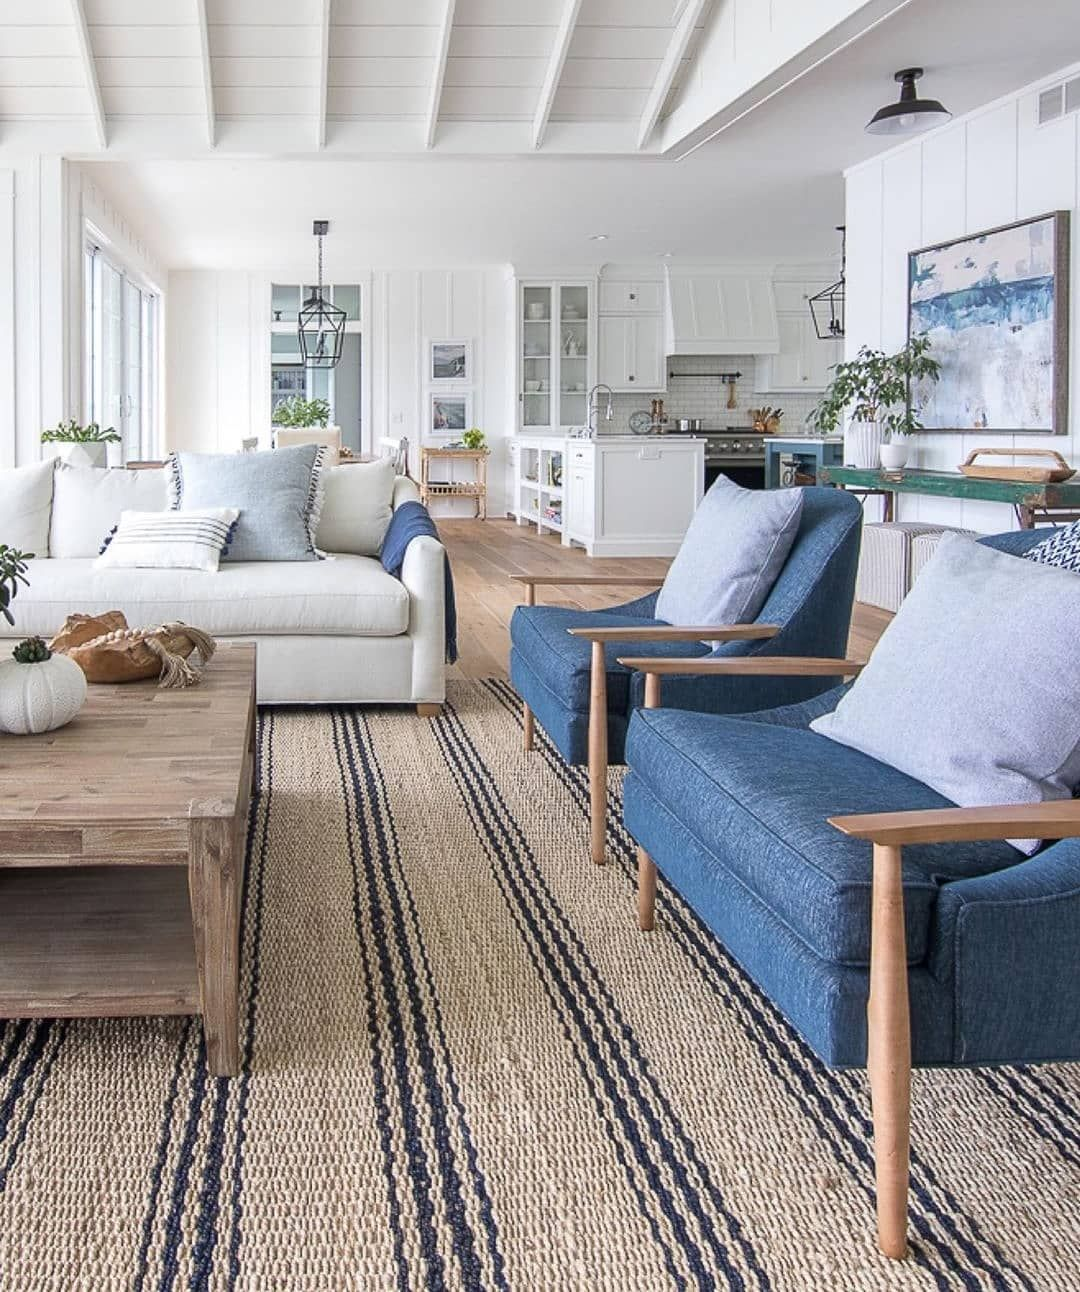 Rustic Coastal Vibes In This Room And That Rug Makes A Huge Impact From Lilypadcottage Fa Beach House Interior Lake House Interior Beach House Living Room